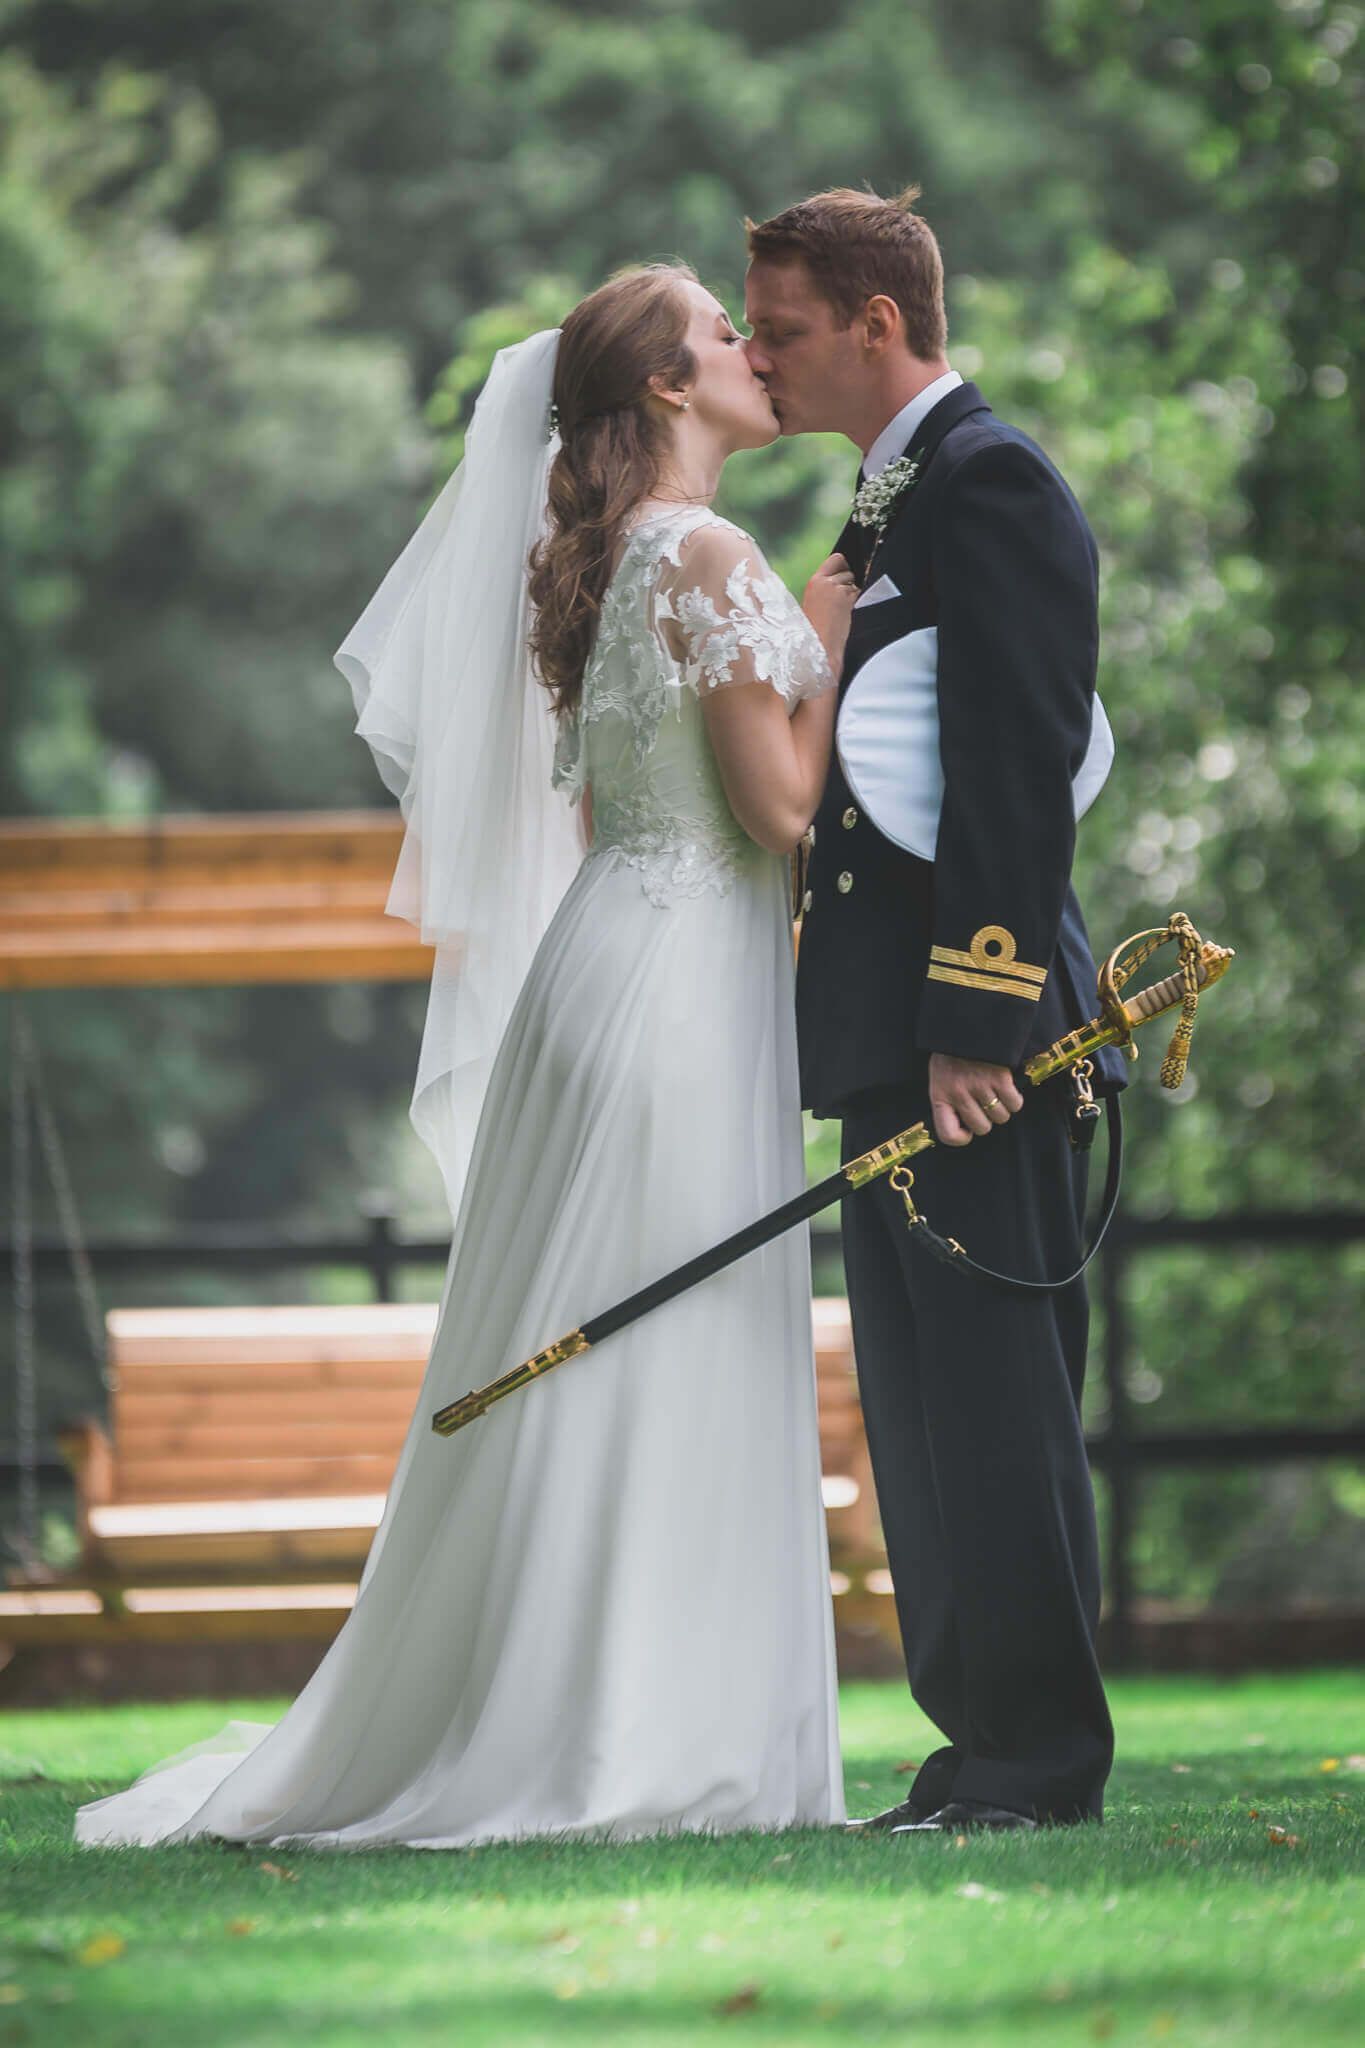 Bride and groom kissing photo by Ryan Hewett Photography